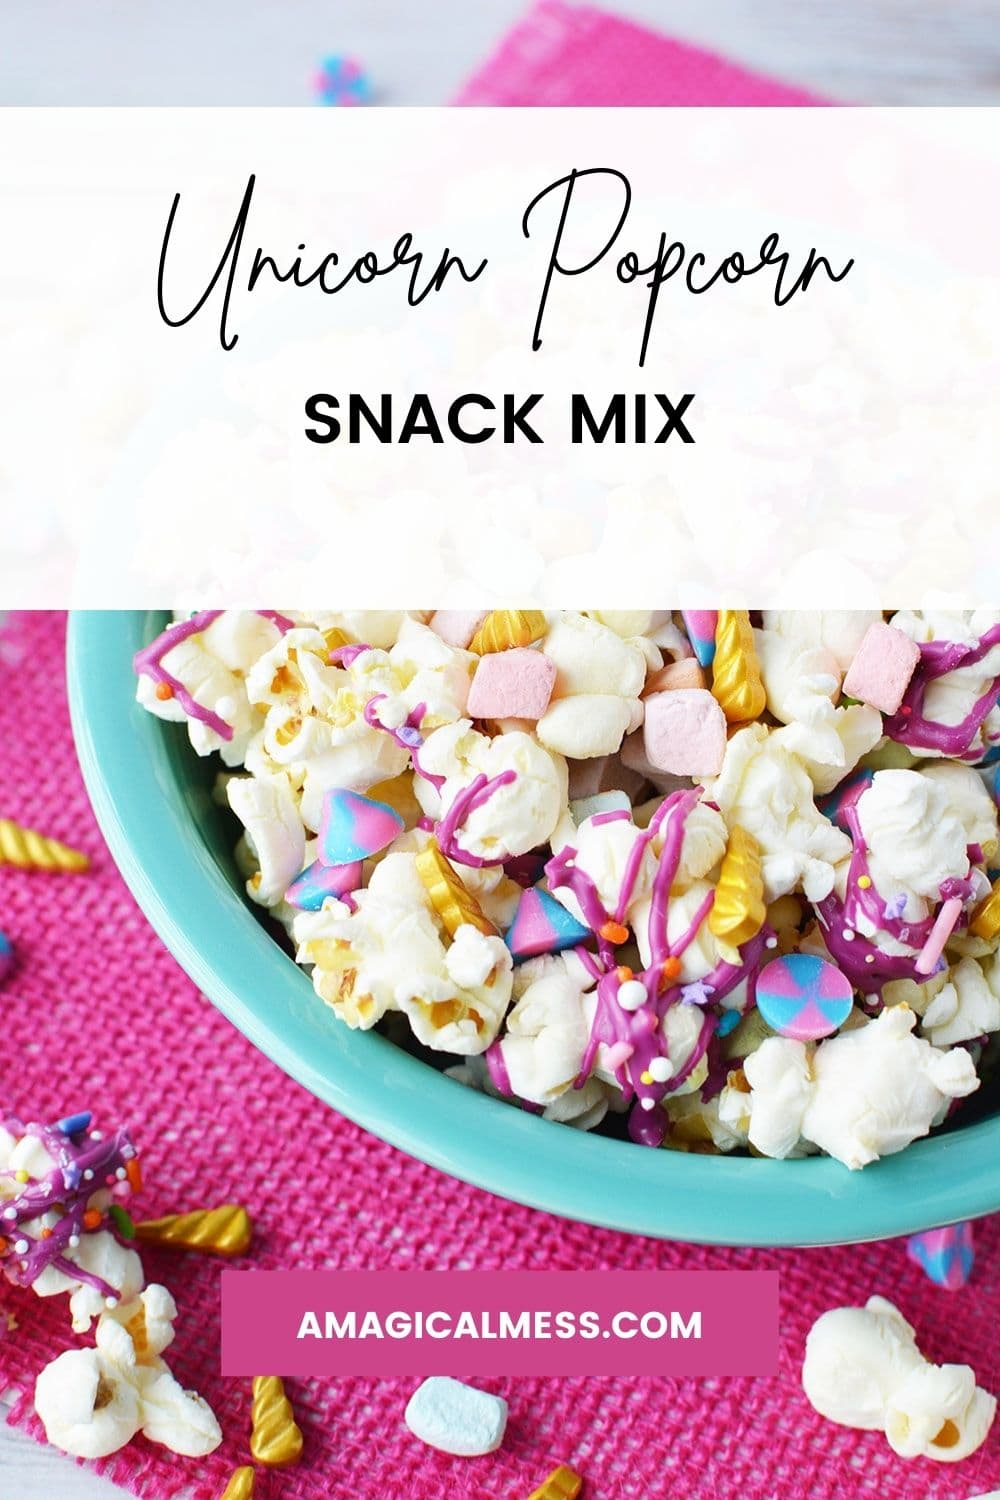 Bowl full of unicorn popcorn with colorful candy and gold horns.